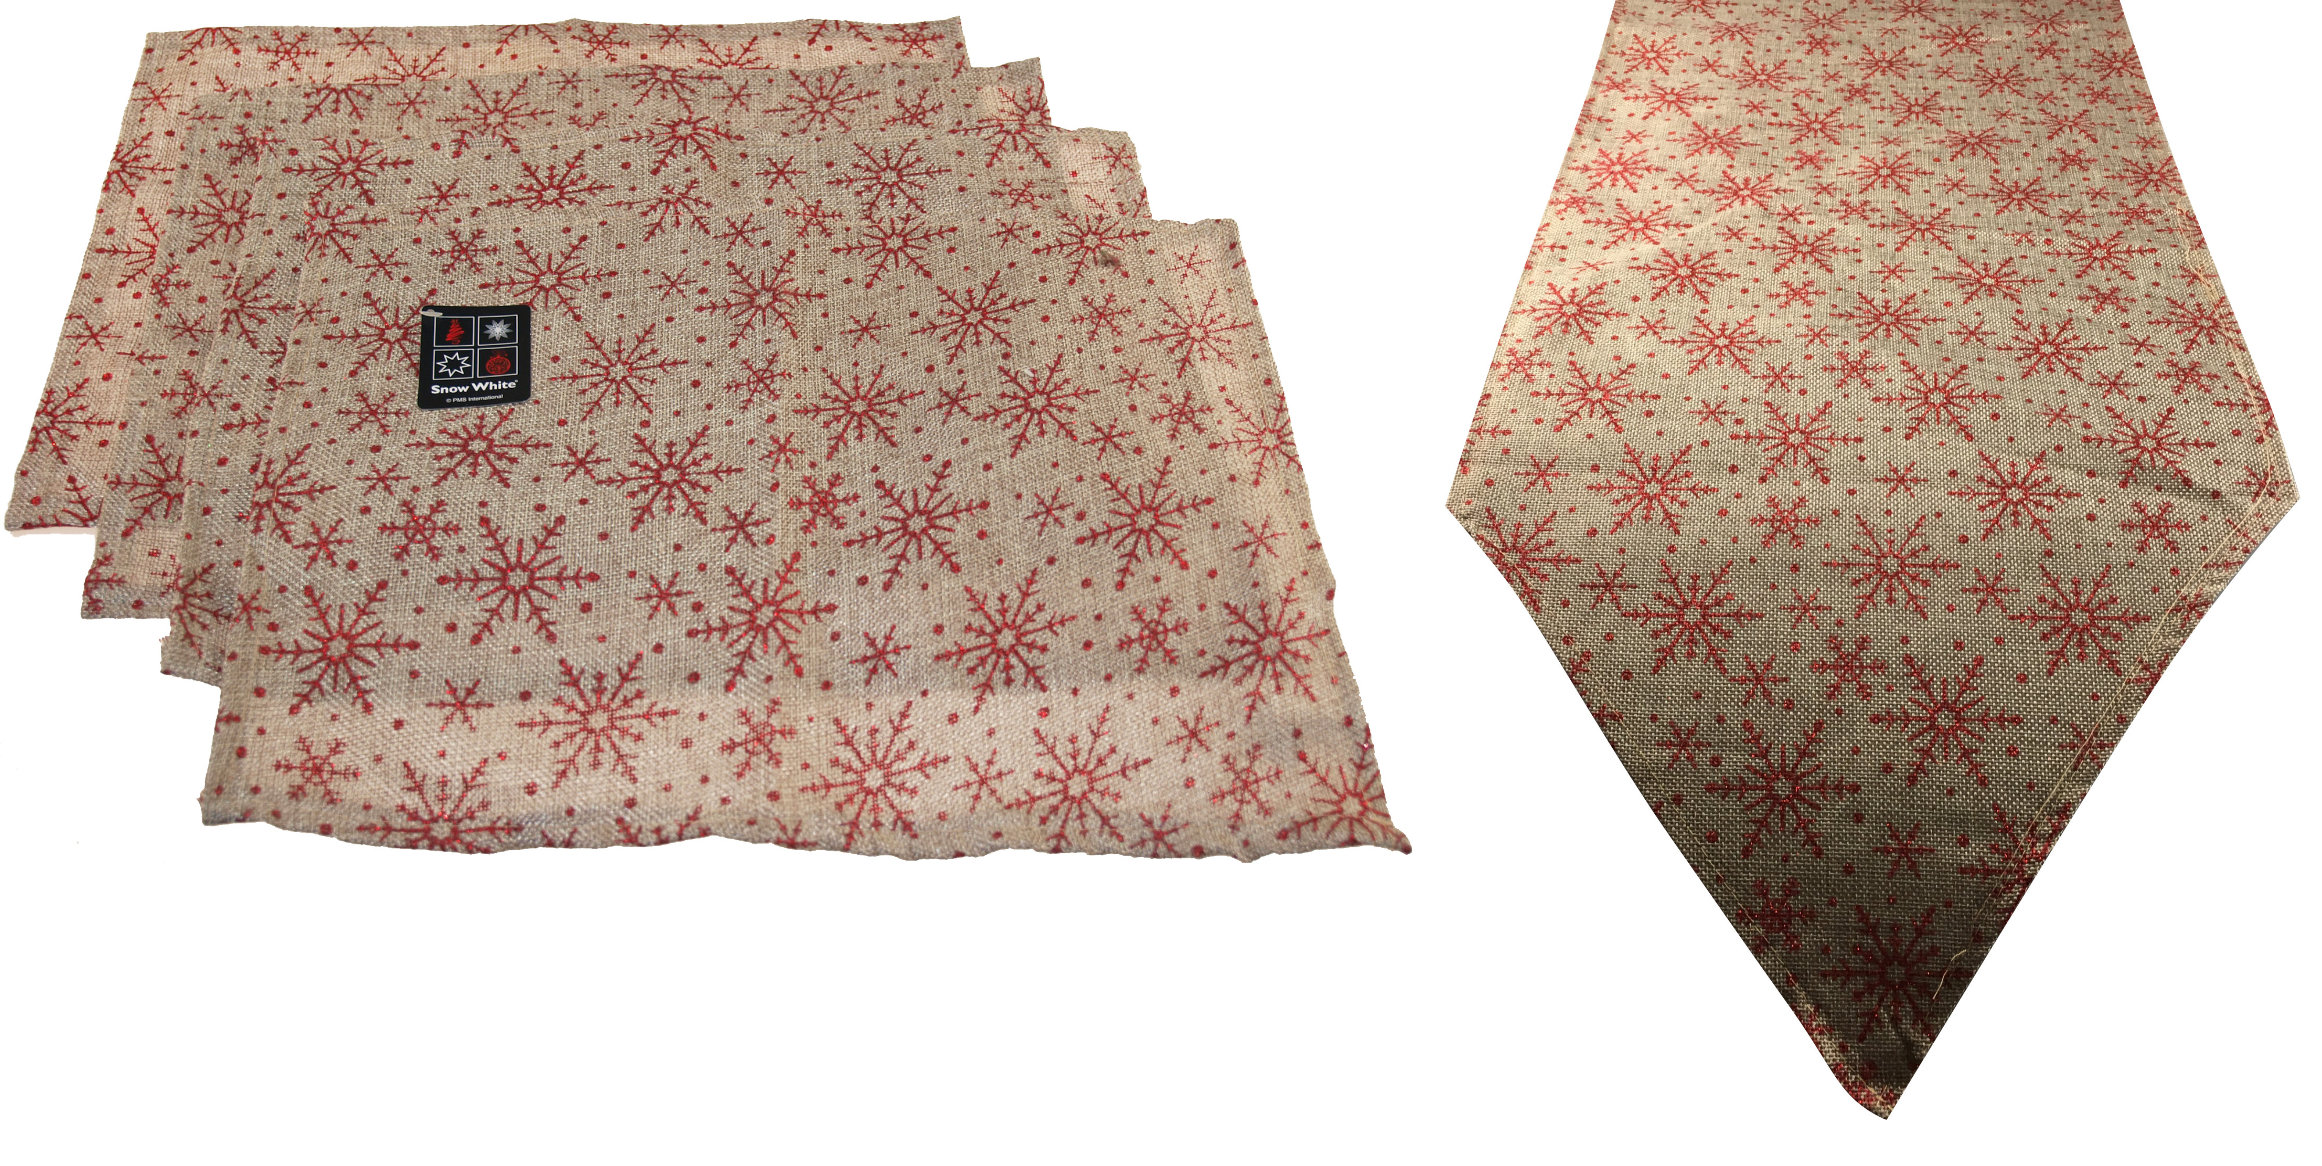 5-Piece-Christmas-Snowflake-Dinner-Table-Place-Mats-And-Runner-Set-Green-Red thumbnail 5